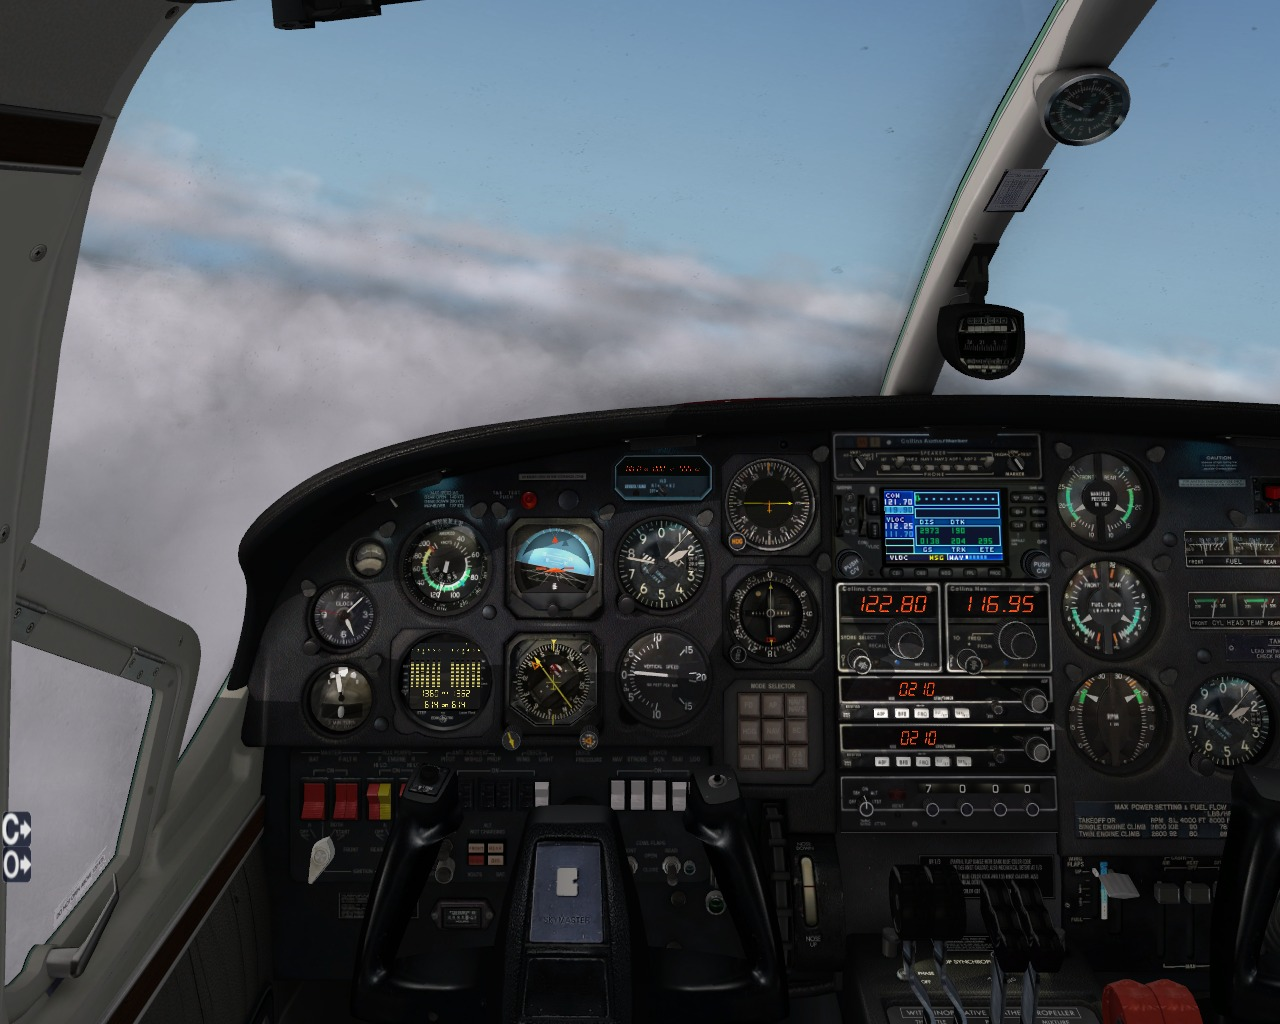 What FSX AddOns will carry over to xplane